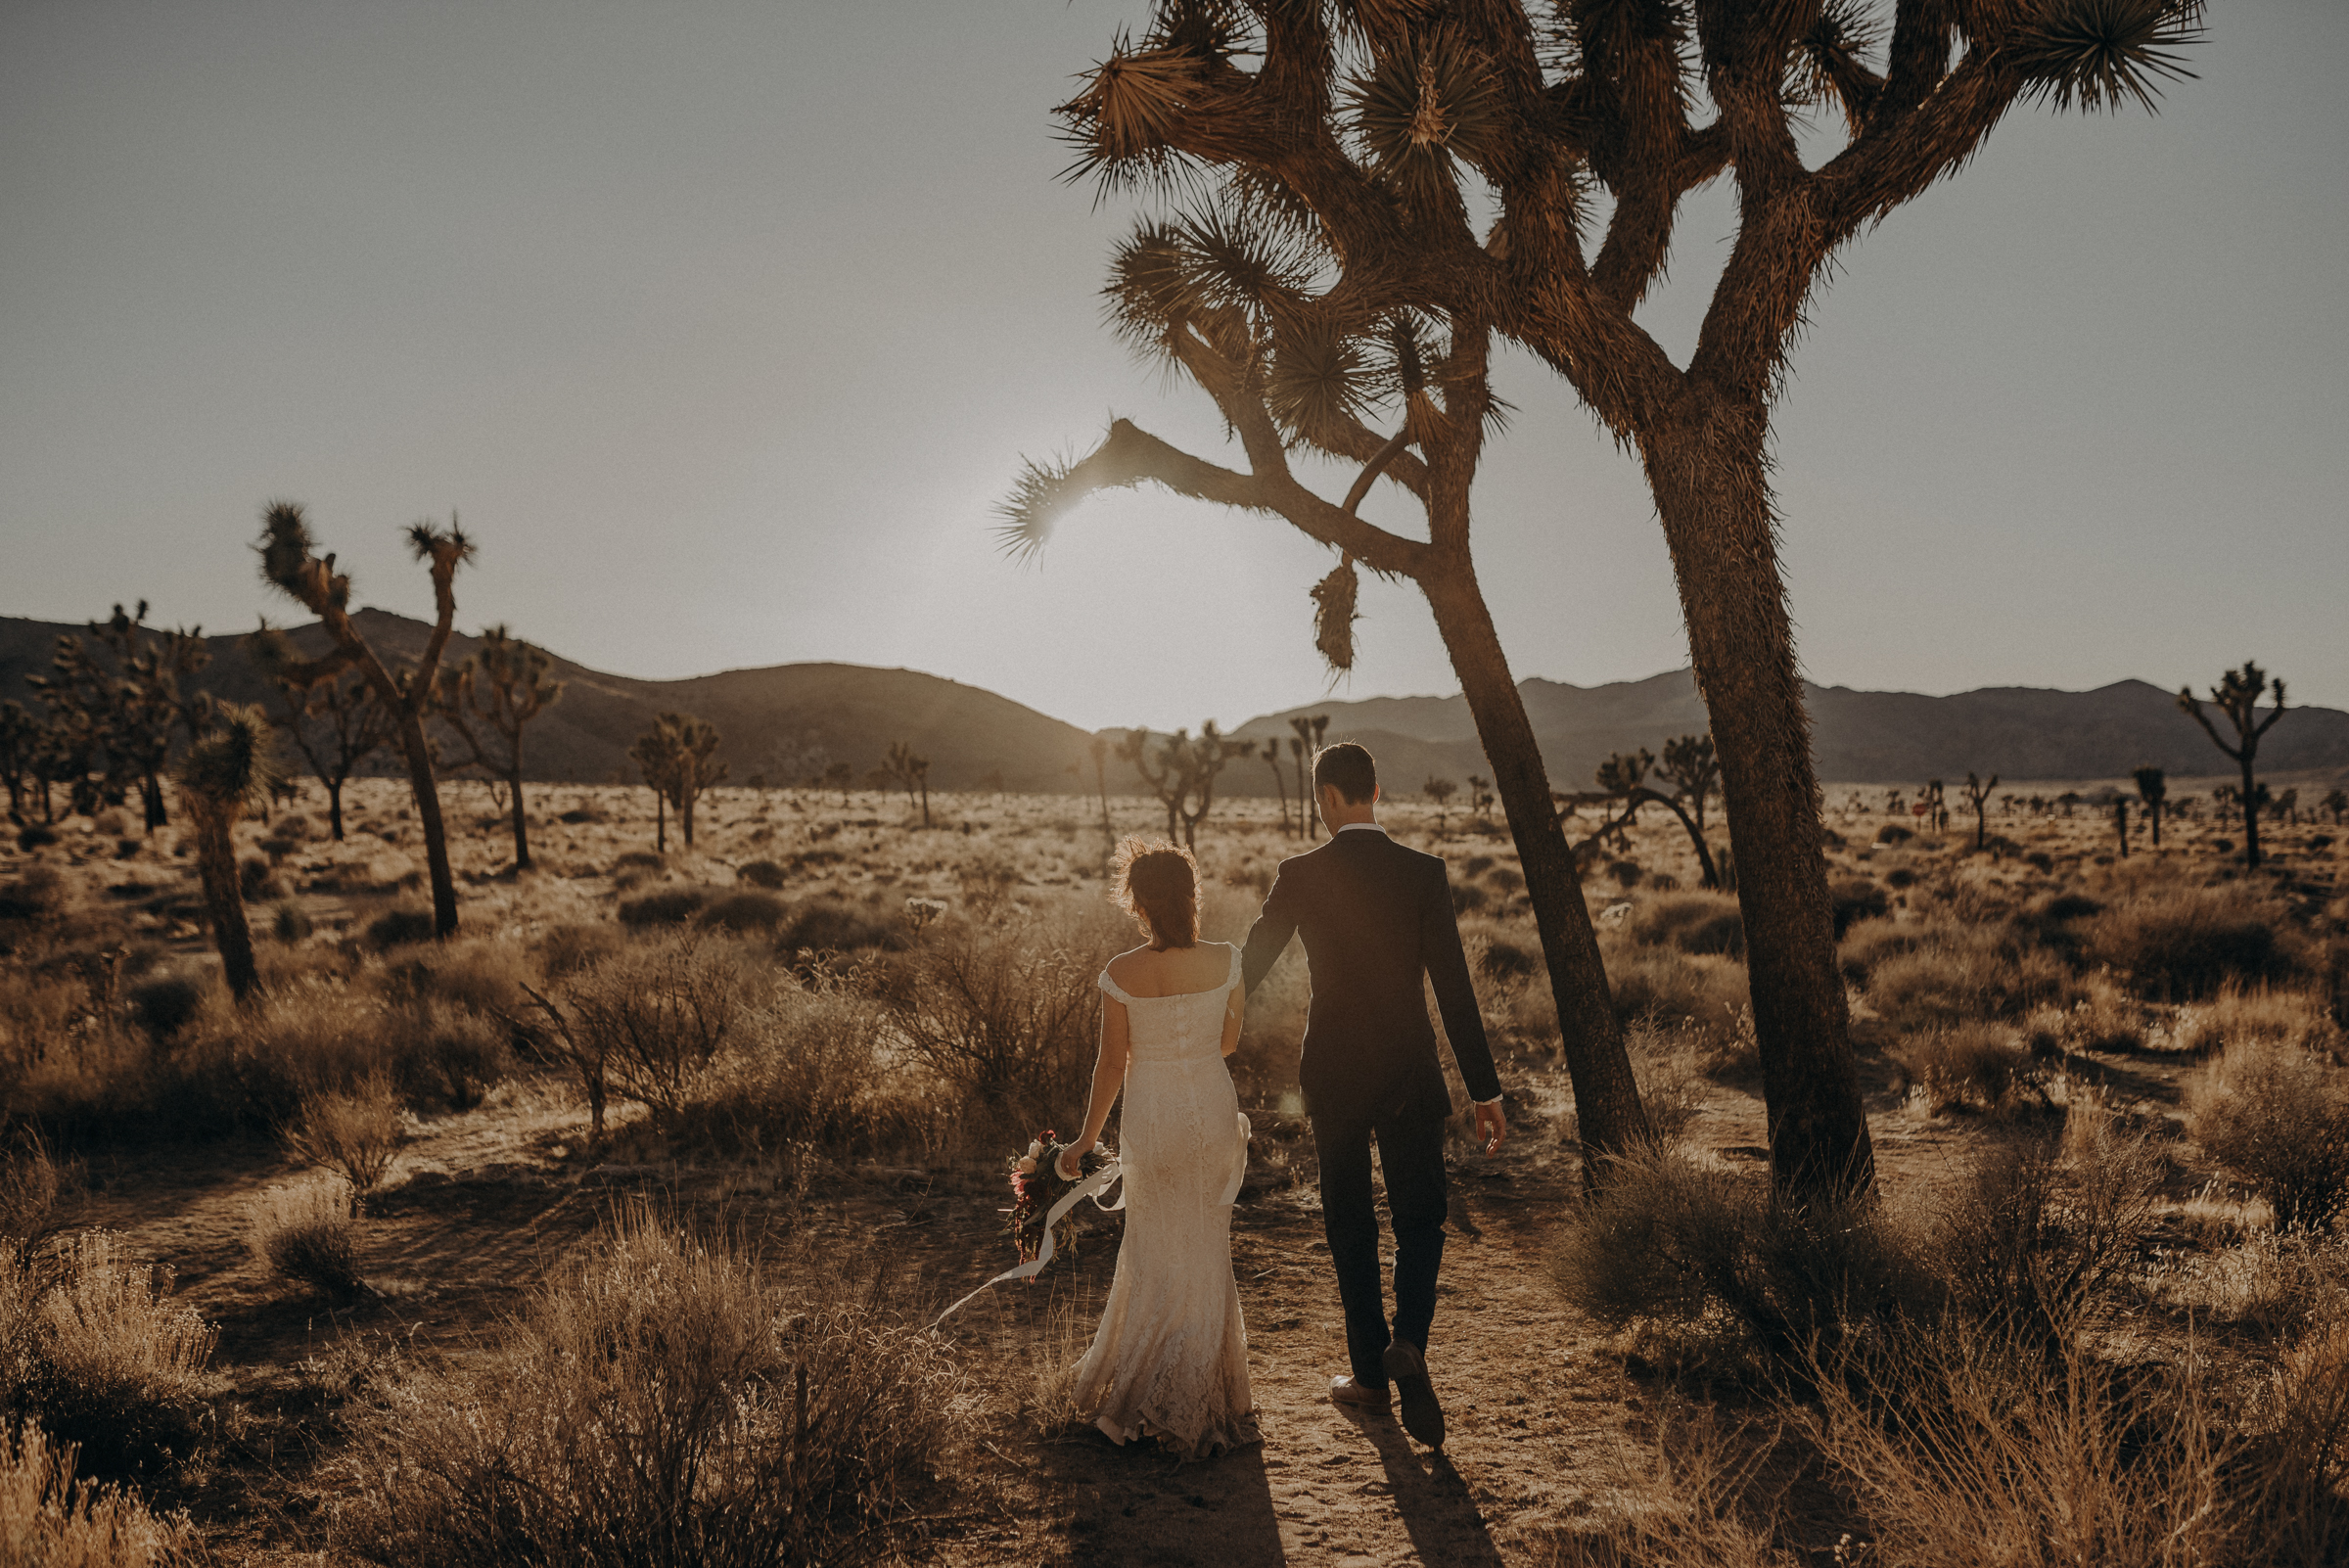 Joshua Tree Elopement - Los Angeles Wedding Photographers - IsaiahAndTaylor.com-093.jpg